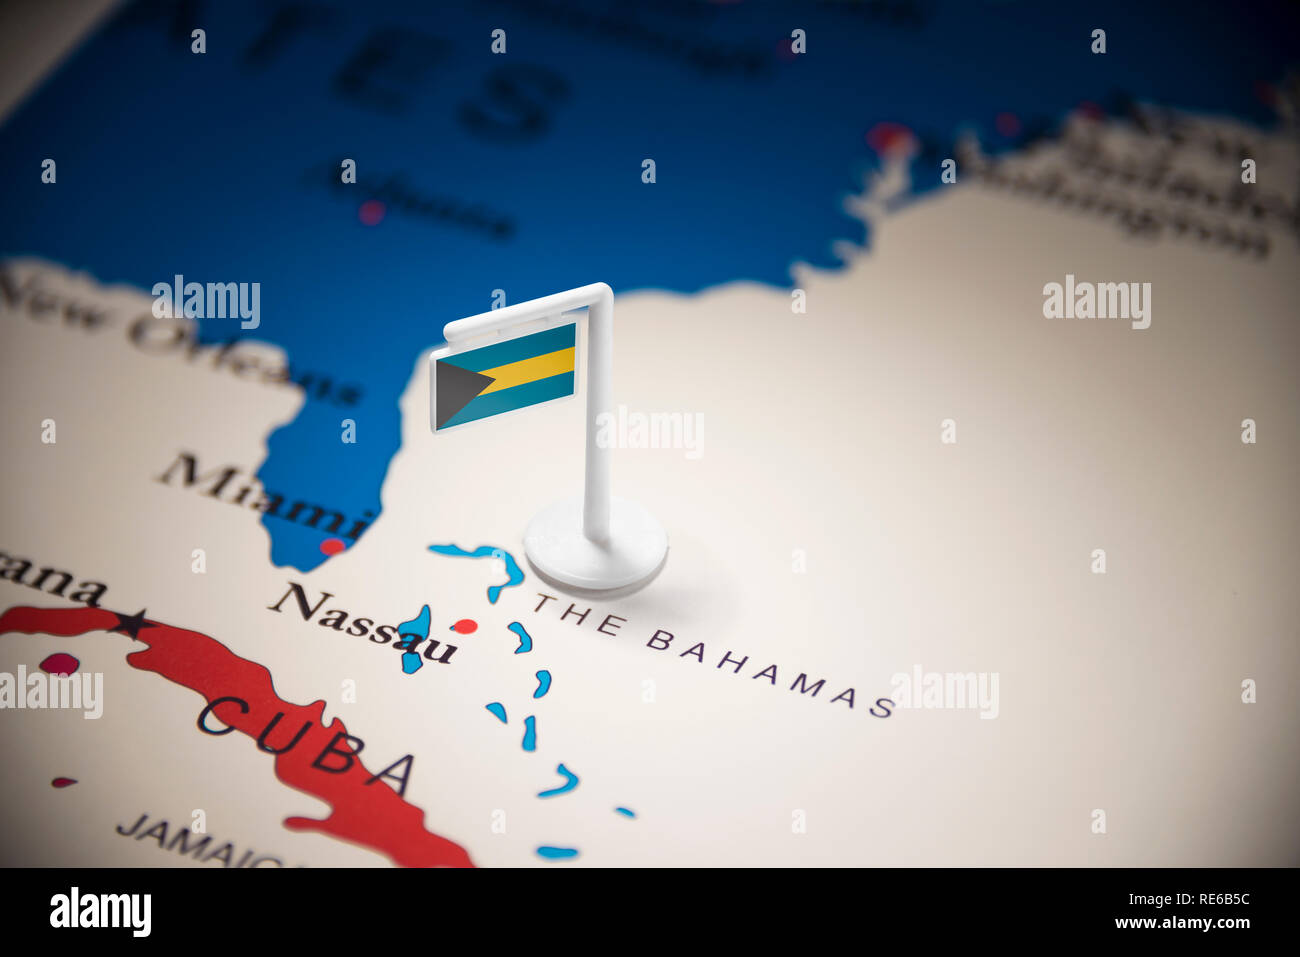 Bahamas Map High Resolution Stock Photography And Images Alamy